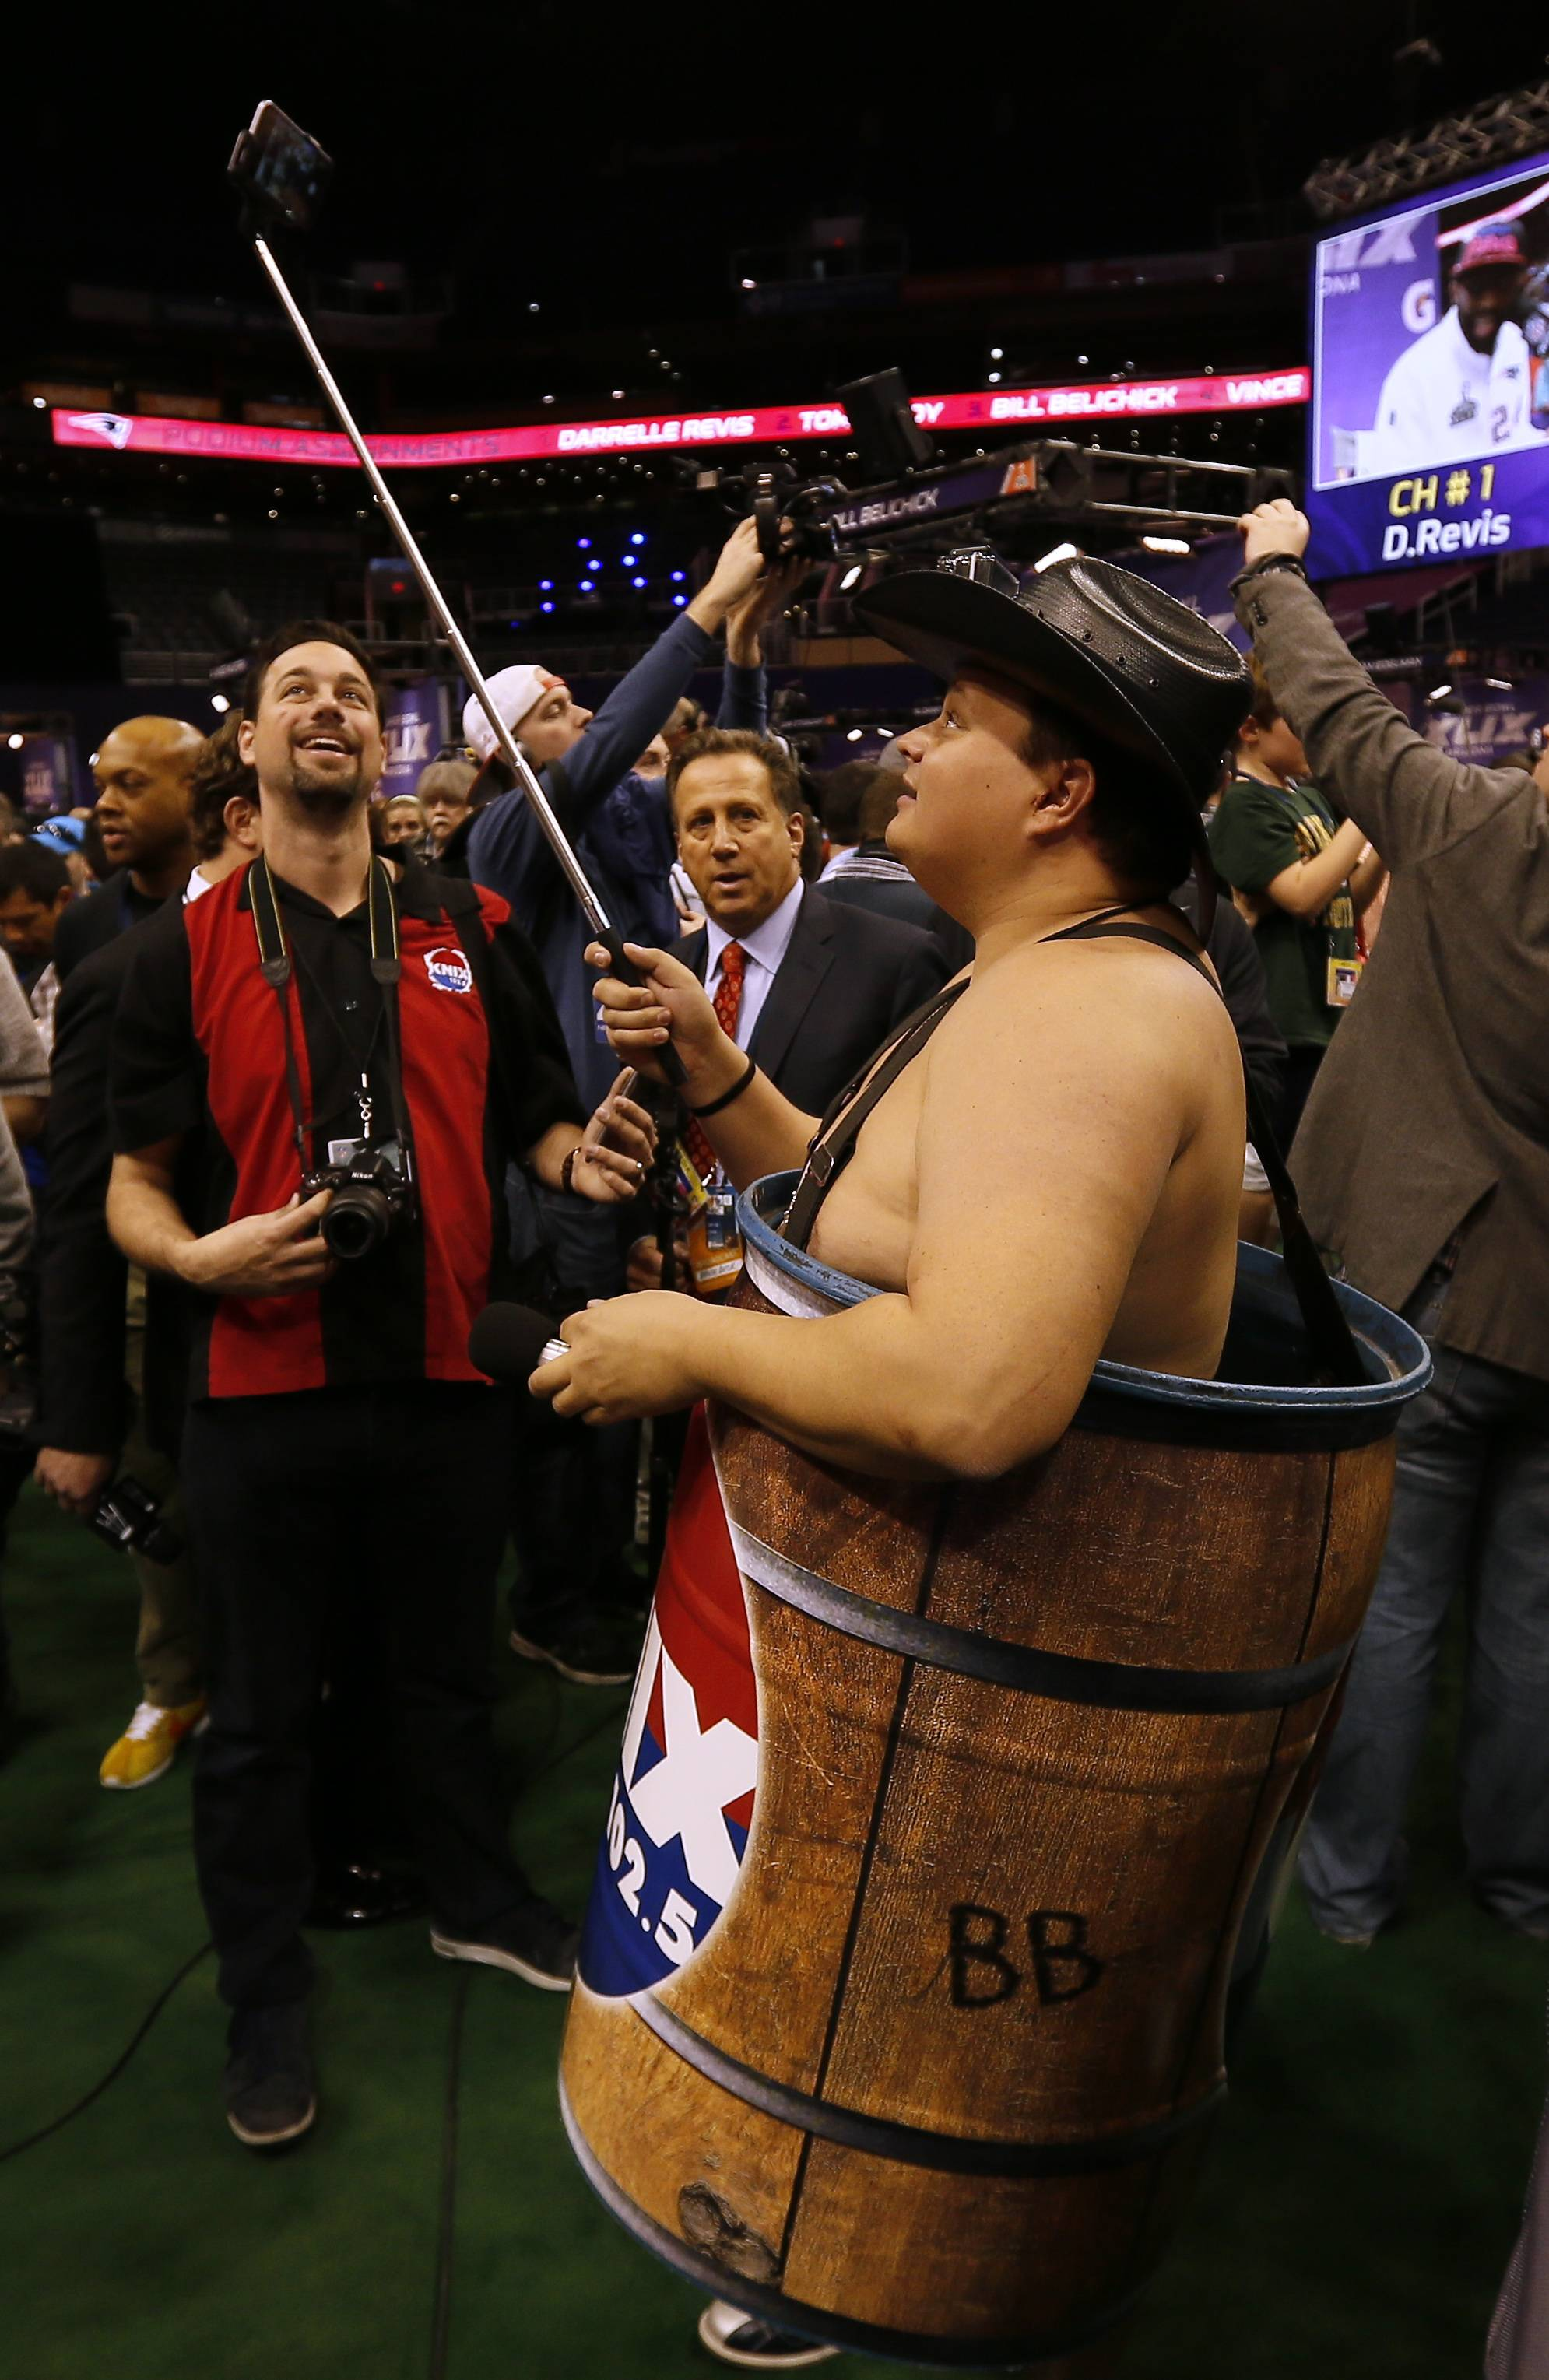 A radio station reporter, wearing a barrel, takes selfies during media day for NFL Super Bowl XLIX football game Tuesday, Jan. 27, 2015, in Phoenix.